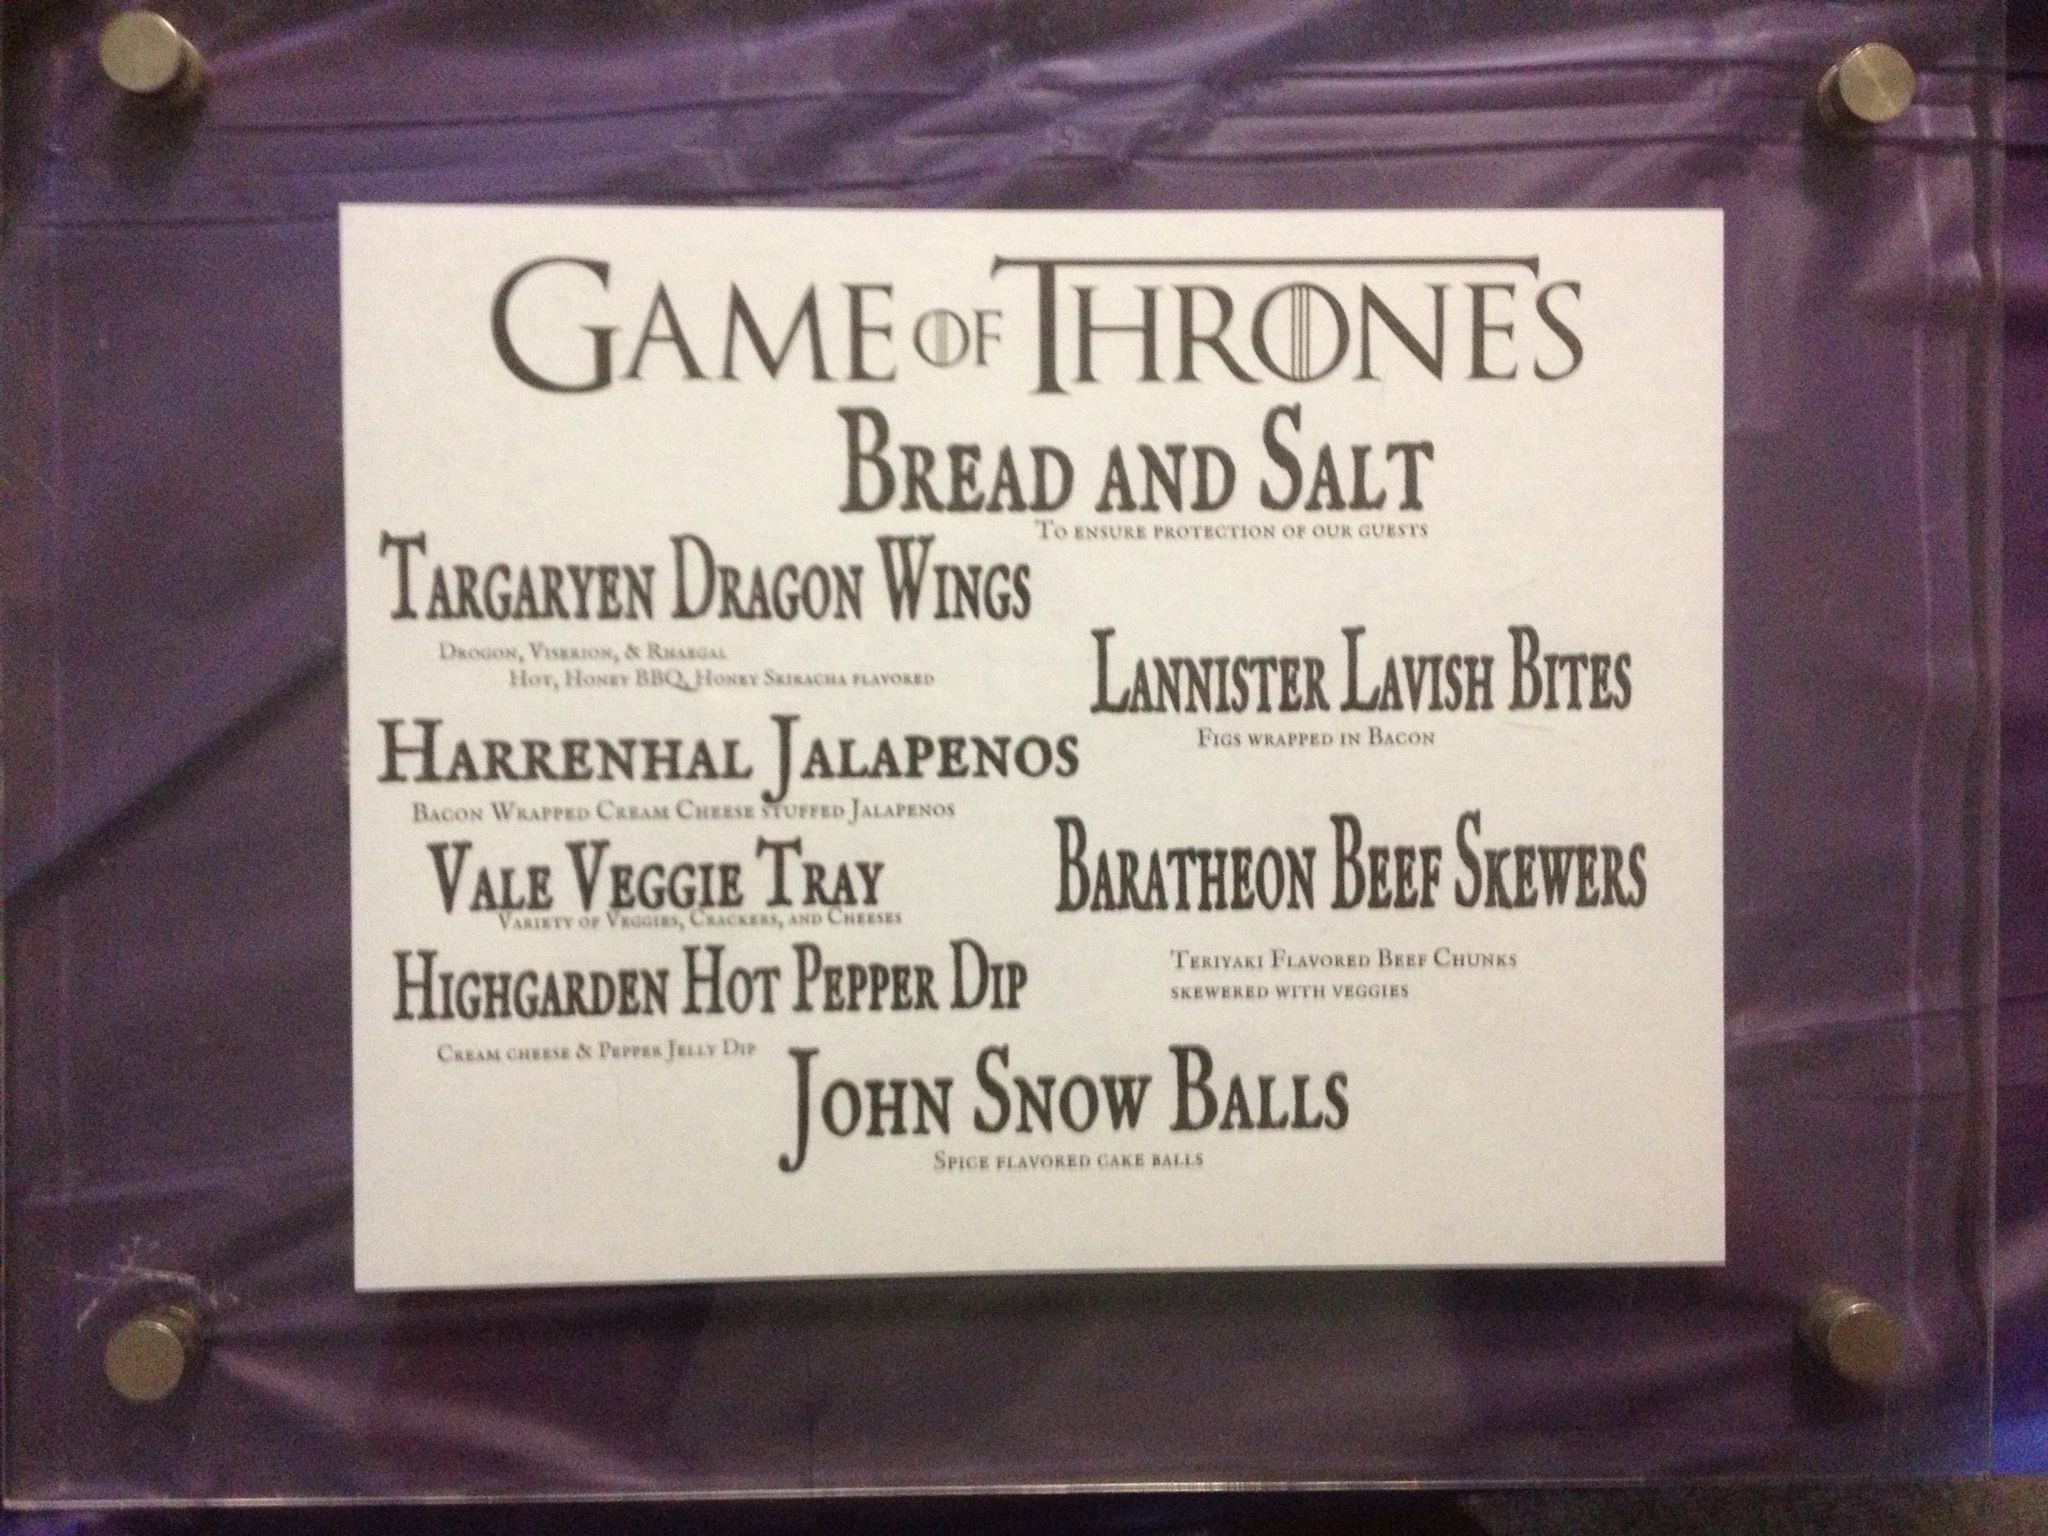 Game Of Thrones Dinner Menu Games Of Thrones Party Got Party